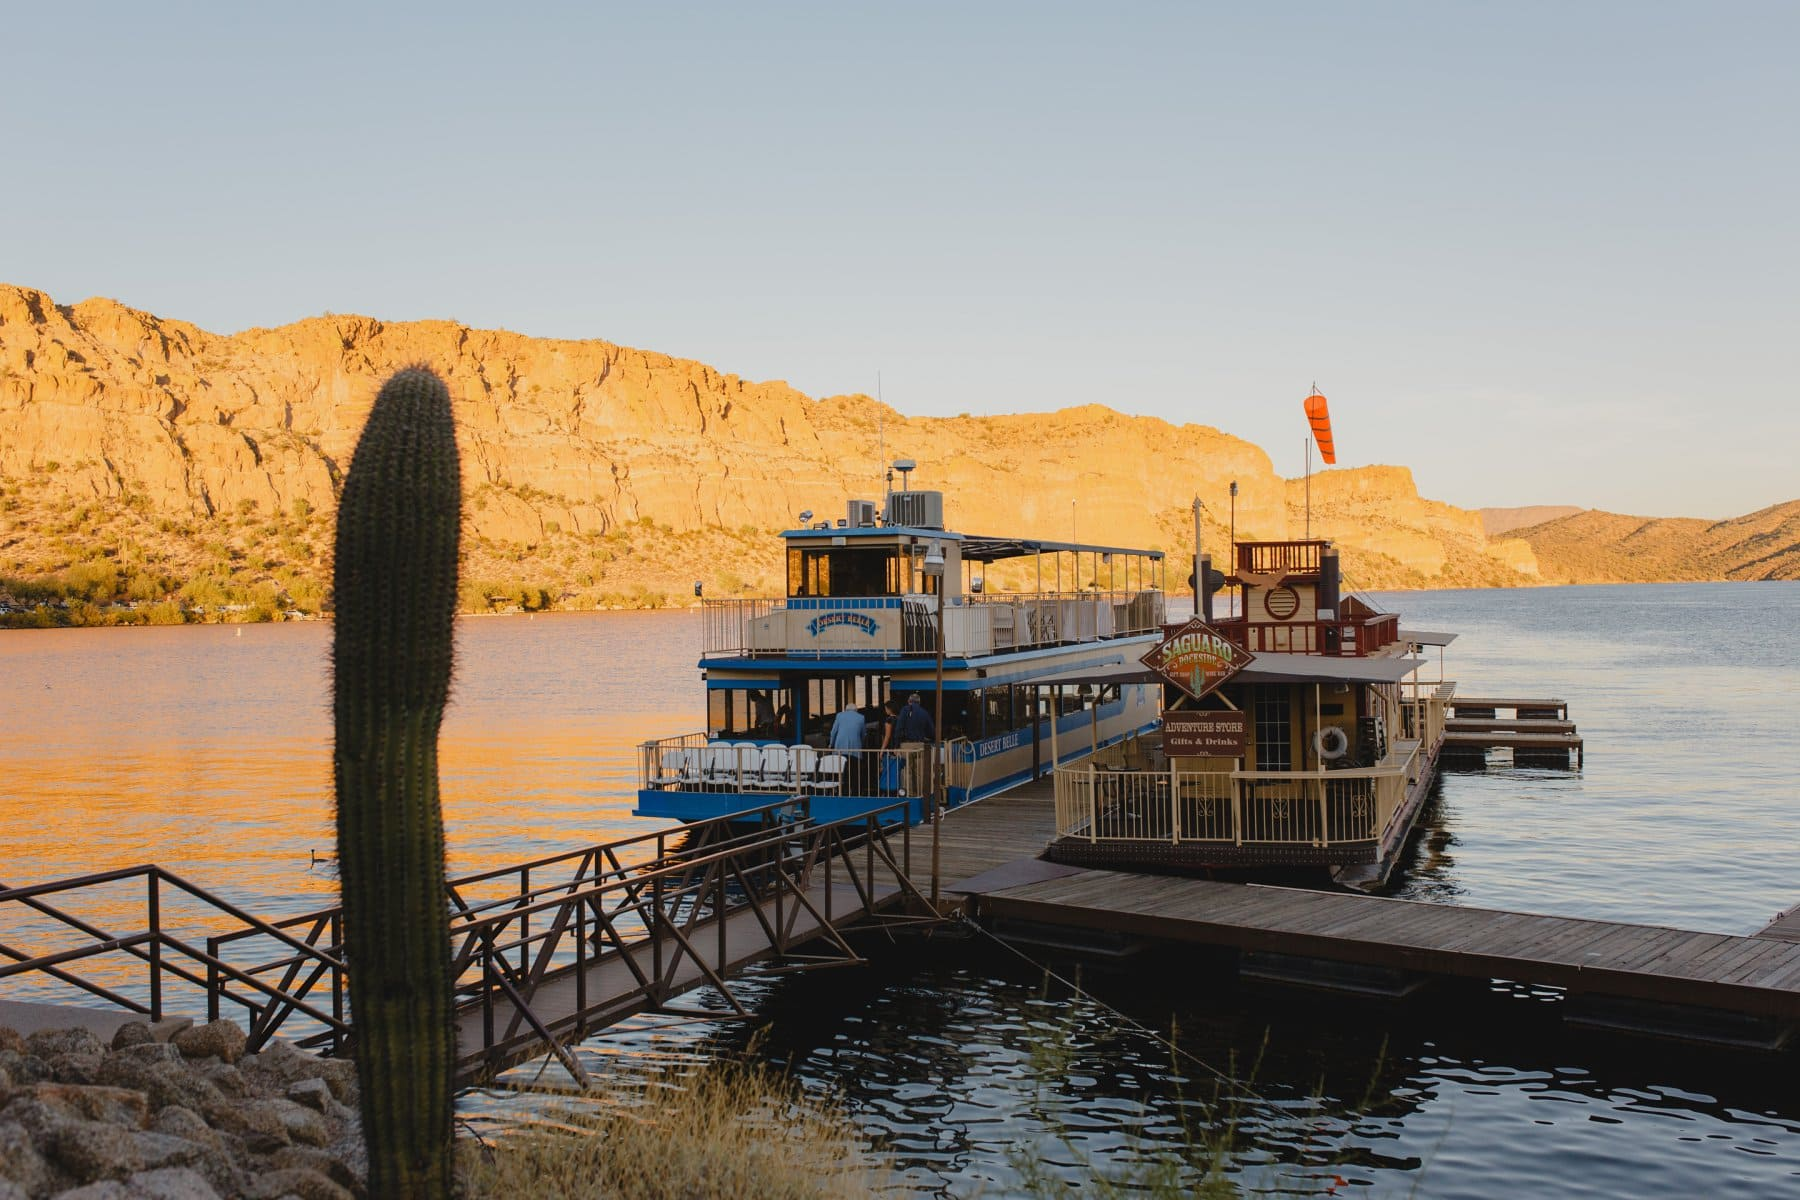 Desert Belle tour boat Saguaro Lake